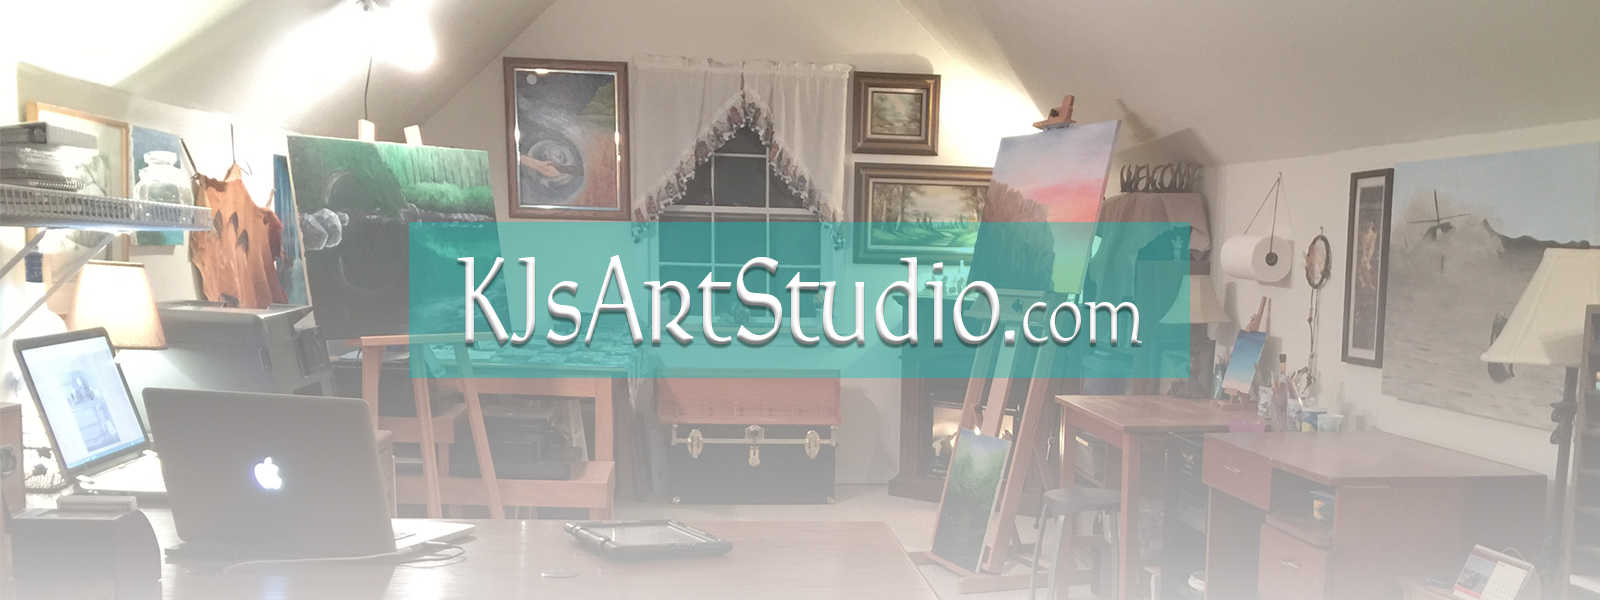 KJ's Art Studio ~ KJsArtStudio.com | Original Fine Art by American Fine Artist, KJ Burk. ~ Oil Paintings, Acrylic Paintings, Mixed Medium Art, Pastel Paintings, Watercolor Paintings, Illustrations and Digital Graphic Art